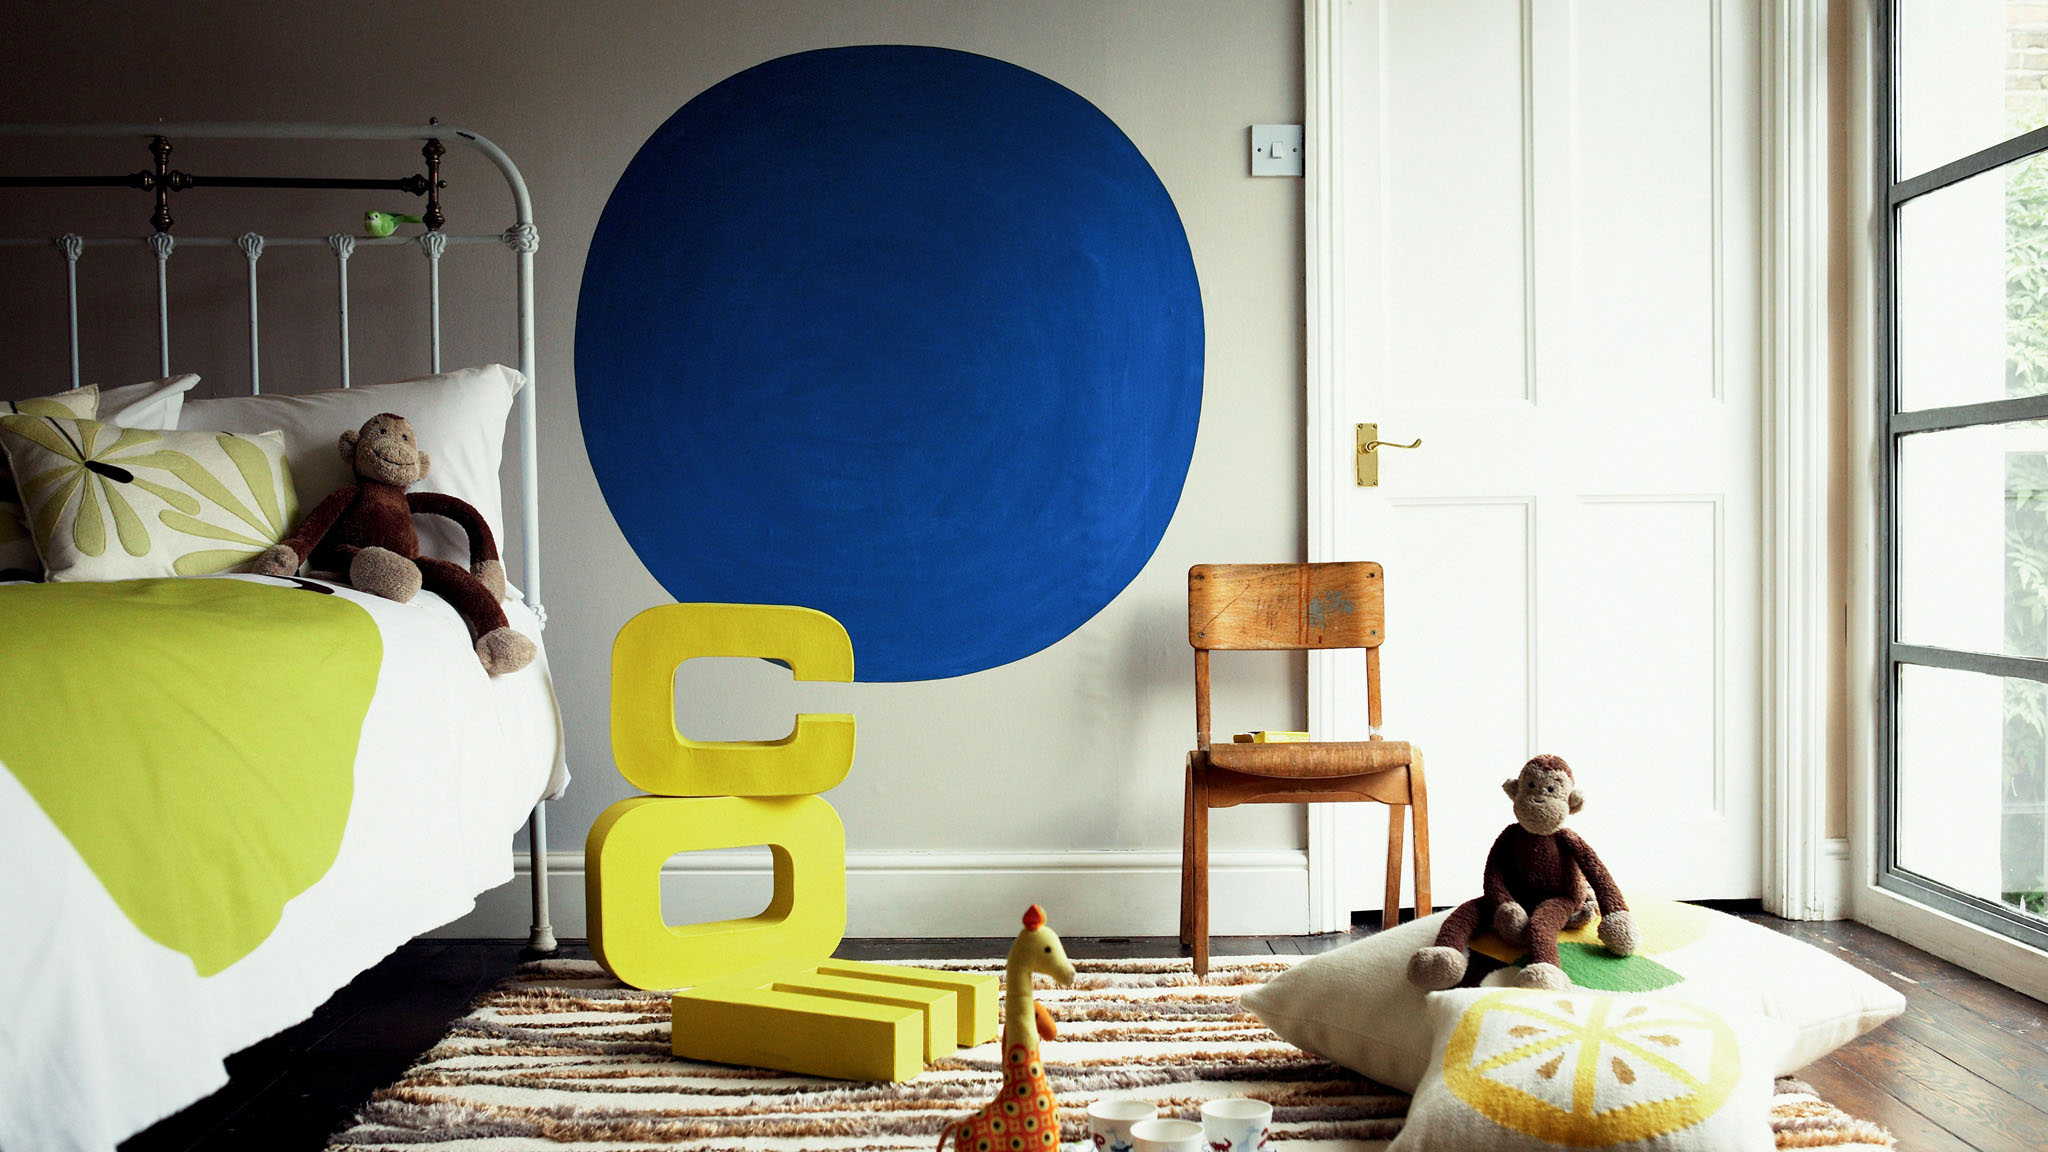 Make a statement with a feature circle in your child's bedroom